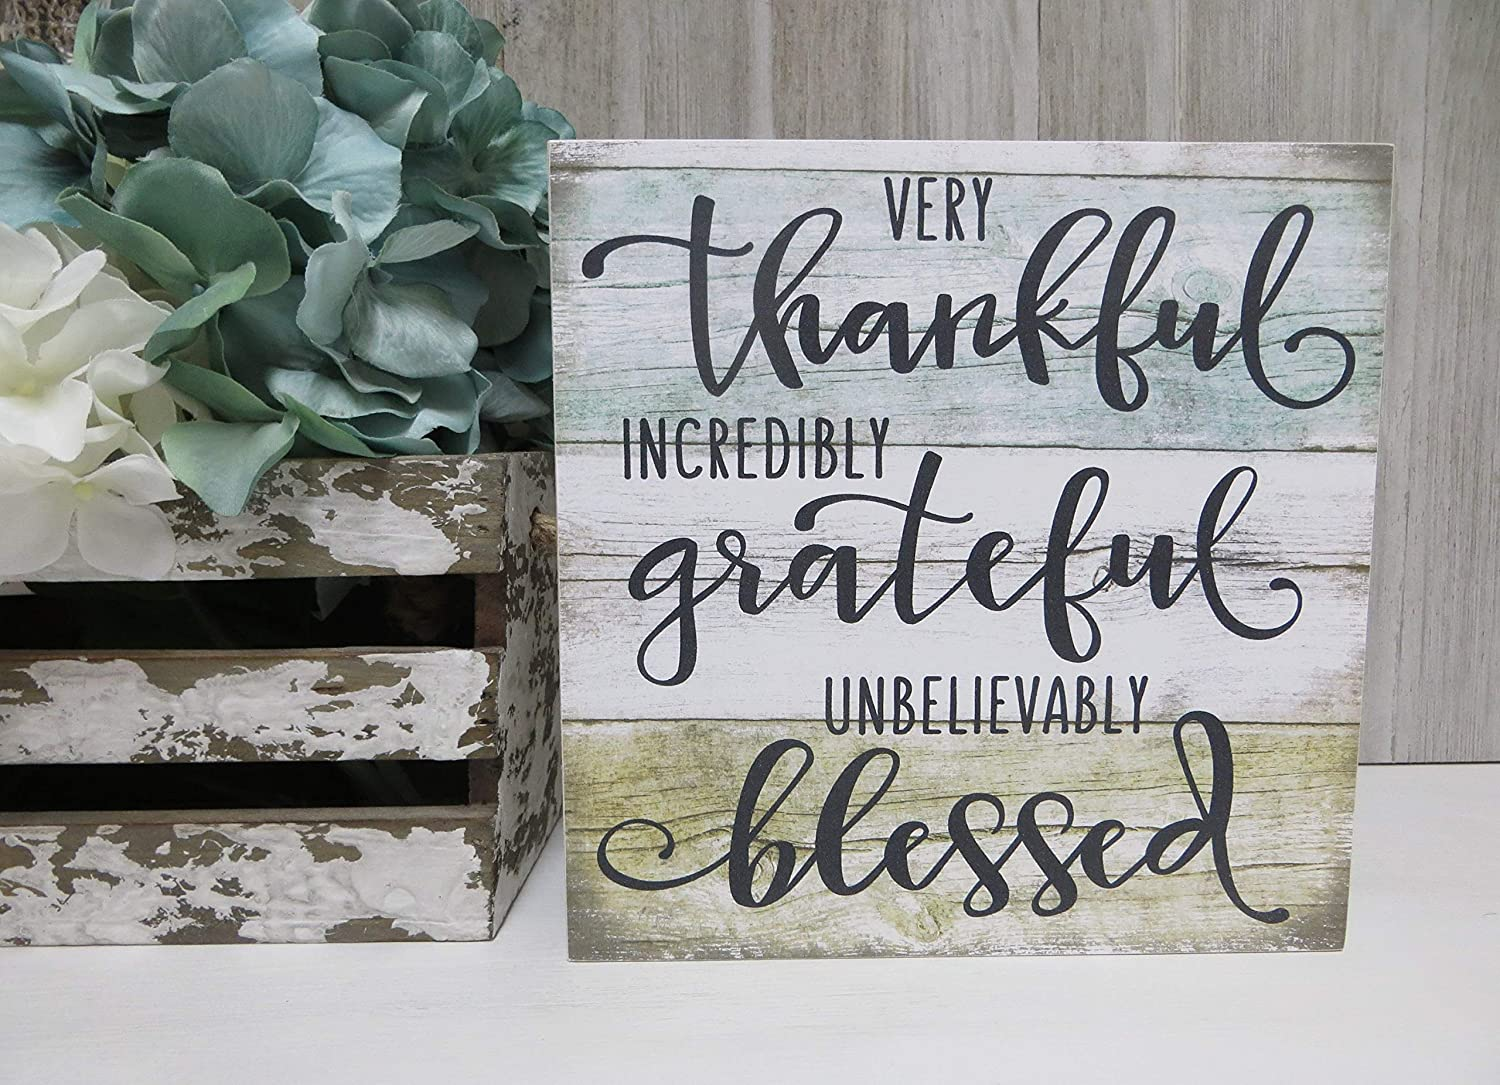 43LenaJon Wall Art Rustic Decor Wood Sign, Very Thankful, Incredibly Grateful, Unbelievably Blessed, Christian Home Decor, Fall Home Decor, Tiered Tray Sign 12x12 Inch U.S. Shipping